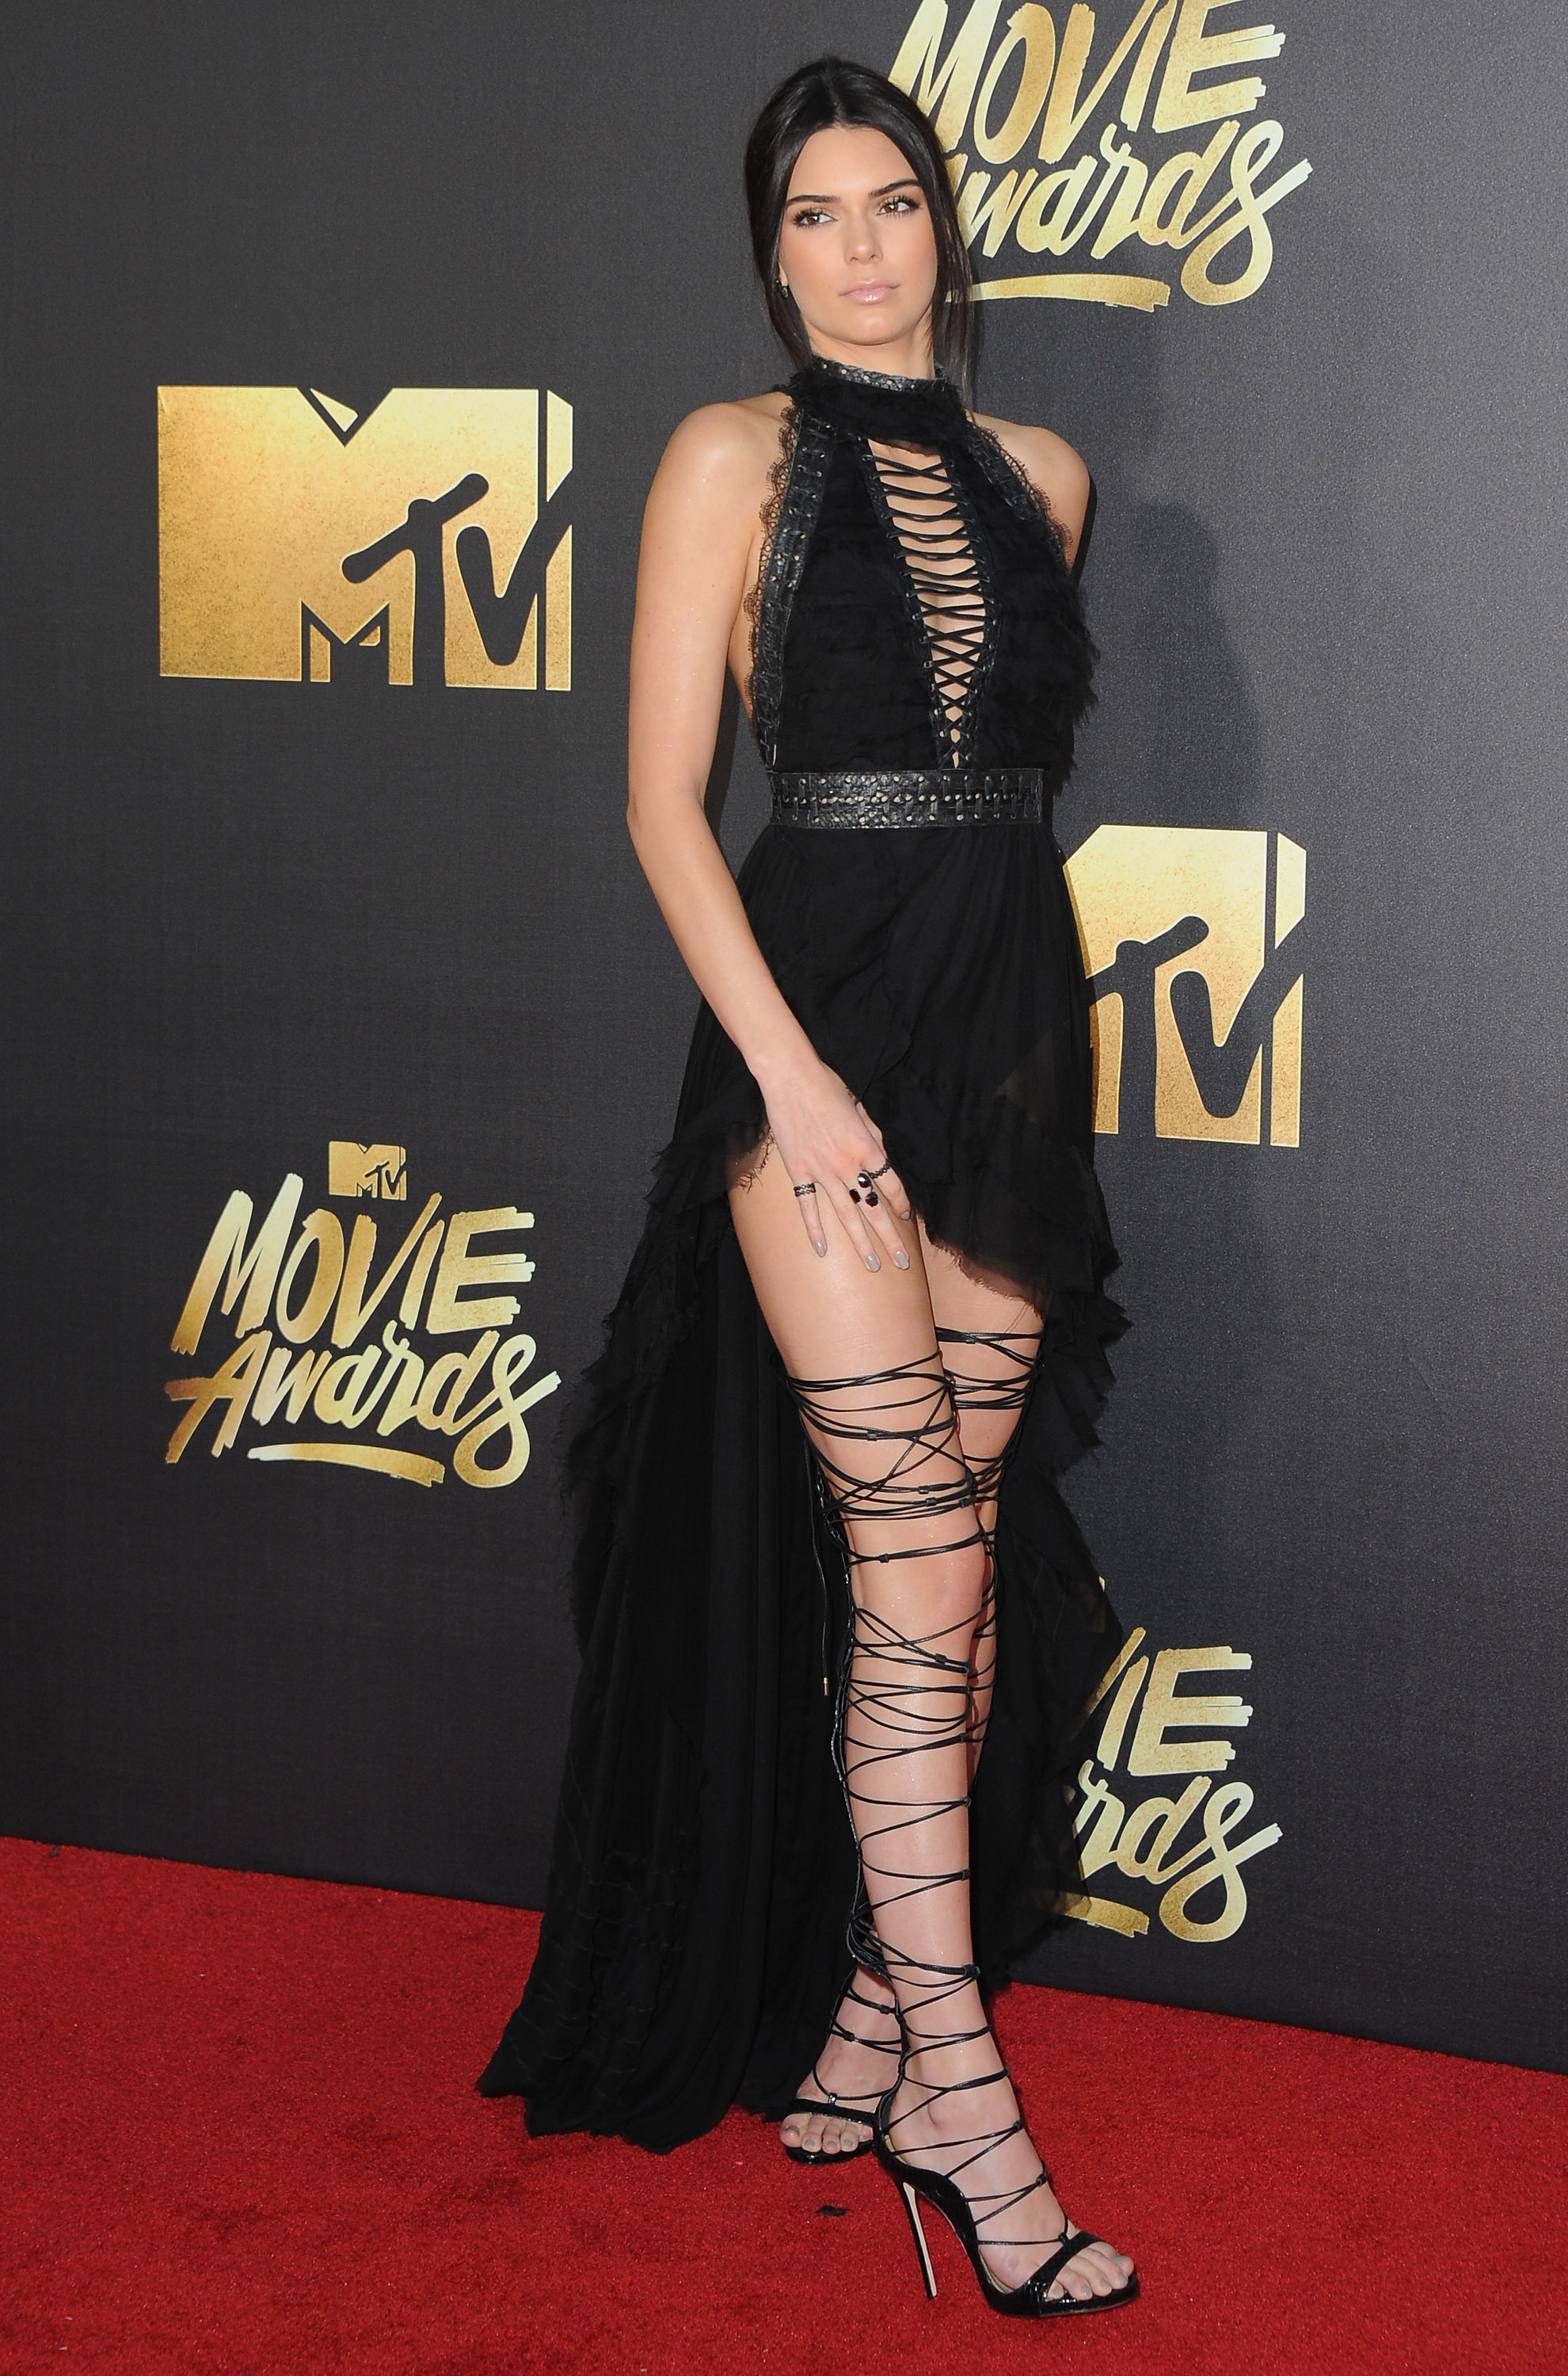 Kylie Jenner Strappy Sandals - Kylie Jenner Shoes Looks